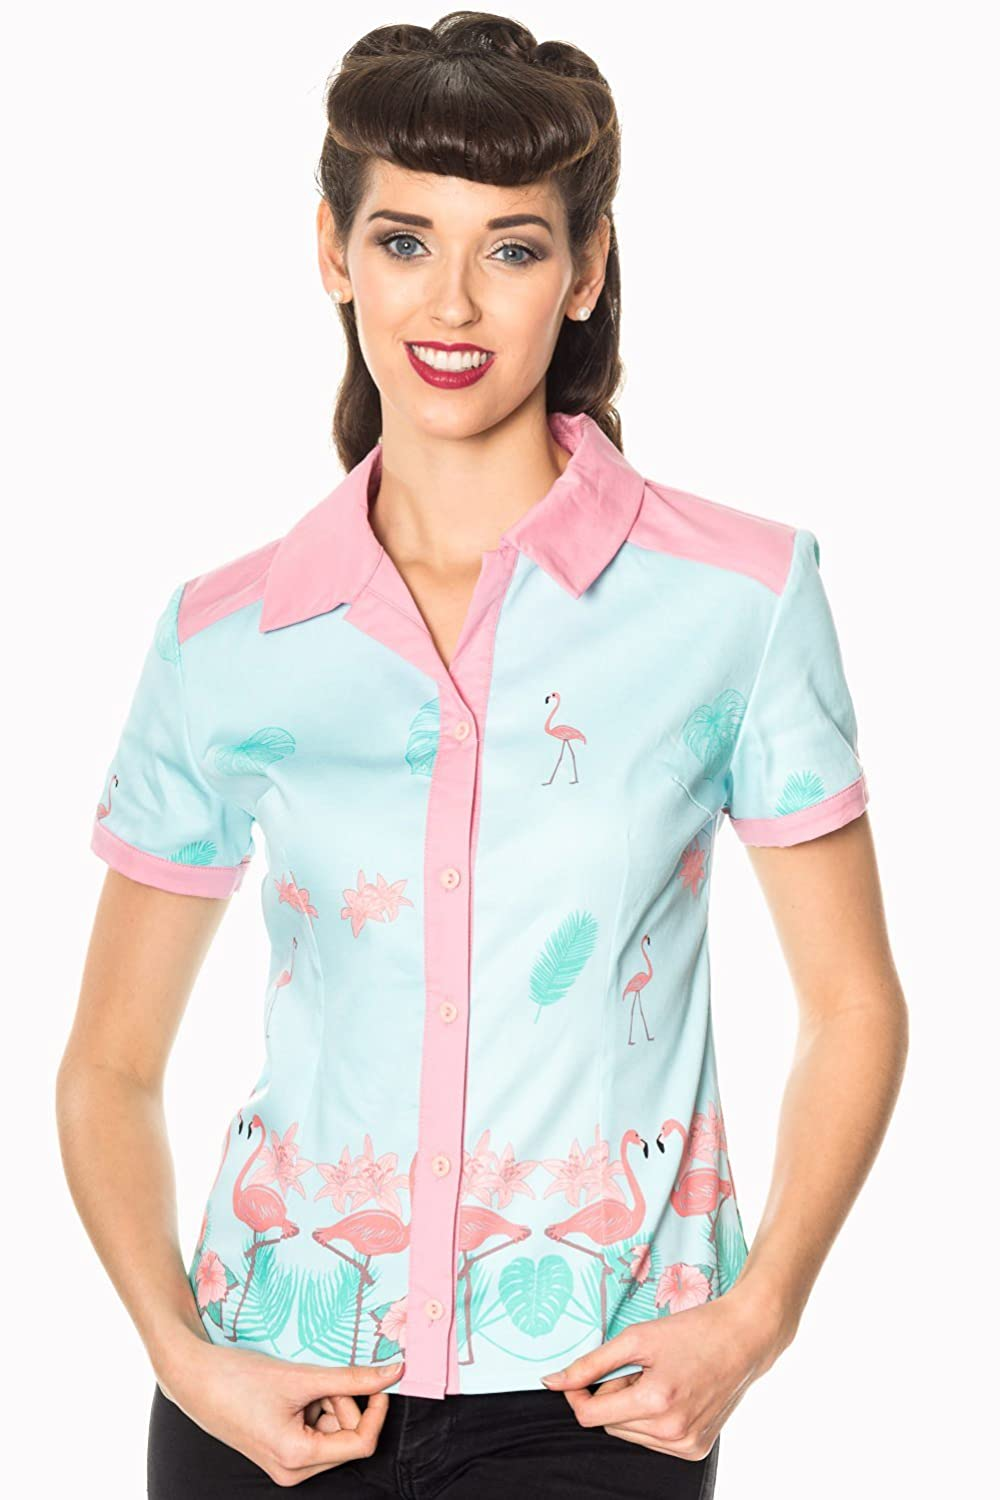 1950s Rockabilly & Pinup Tops, Shirts, Blouses Banned Going My Way Vintage Retro Shirt Blouse £27.99 AT vintagedancer.com